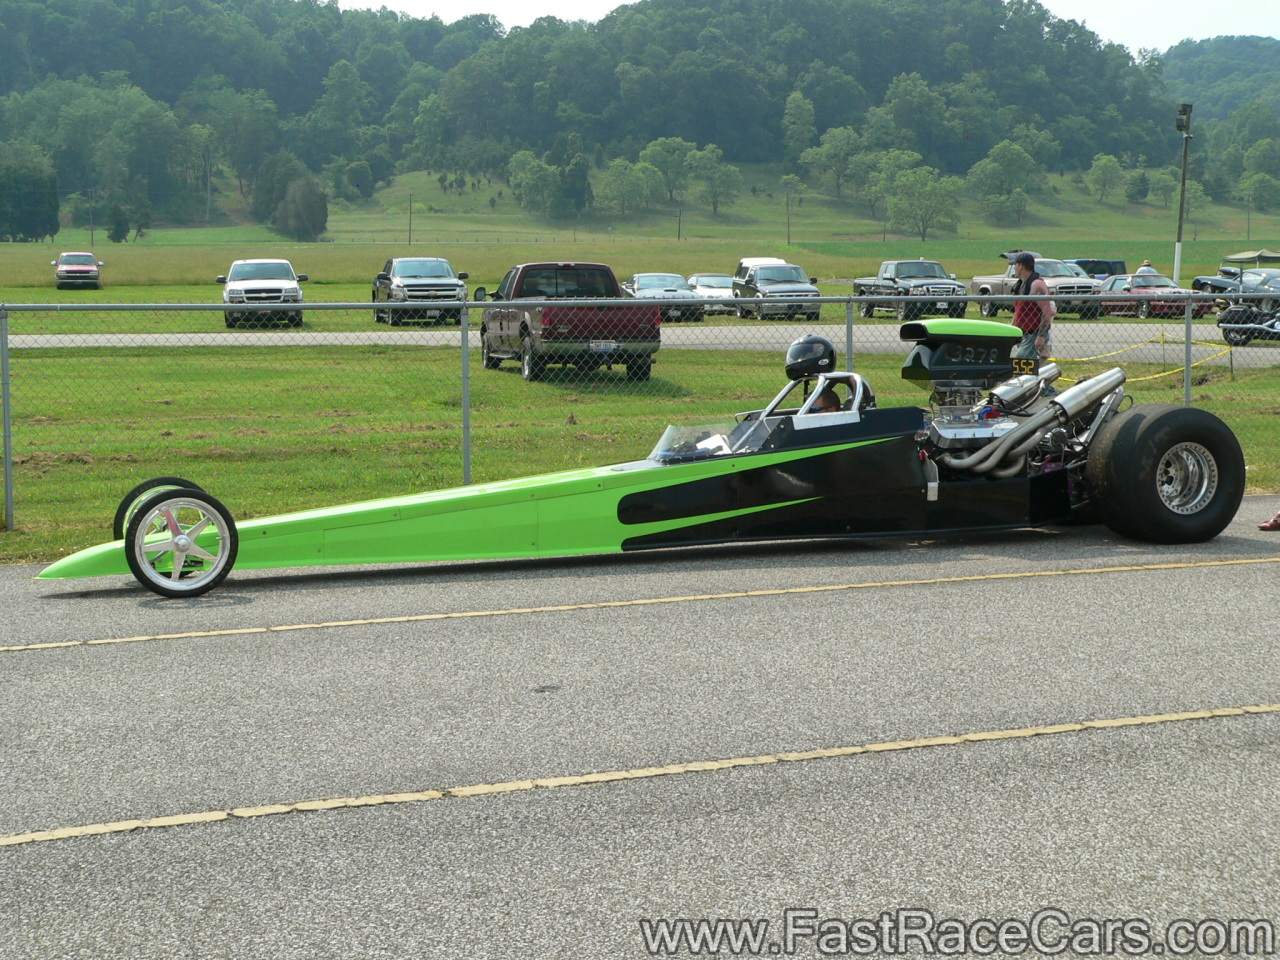 Drag Race Cars > Dragsters > Picture of Green and Black DRAGSTER